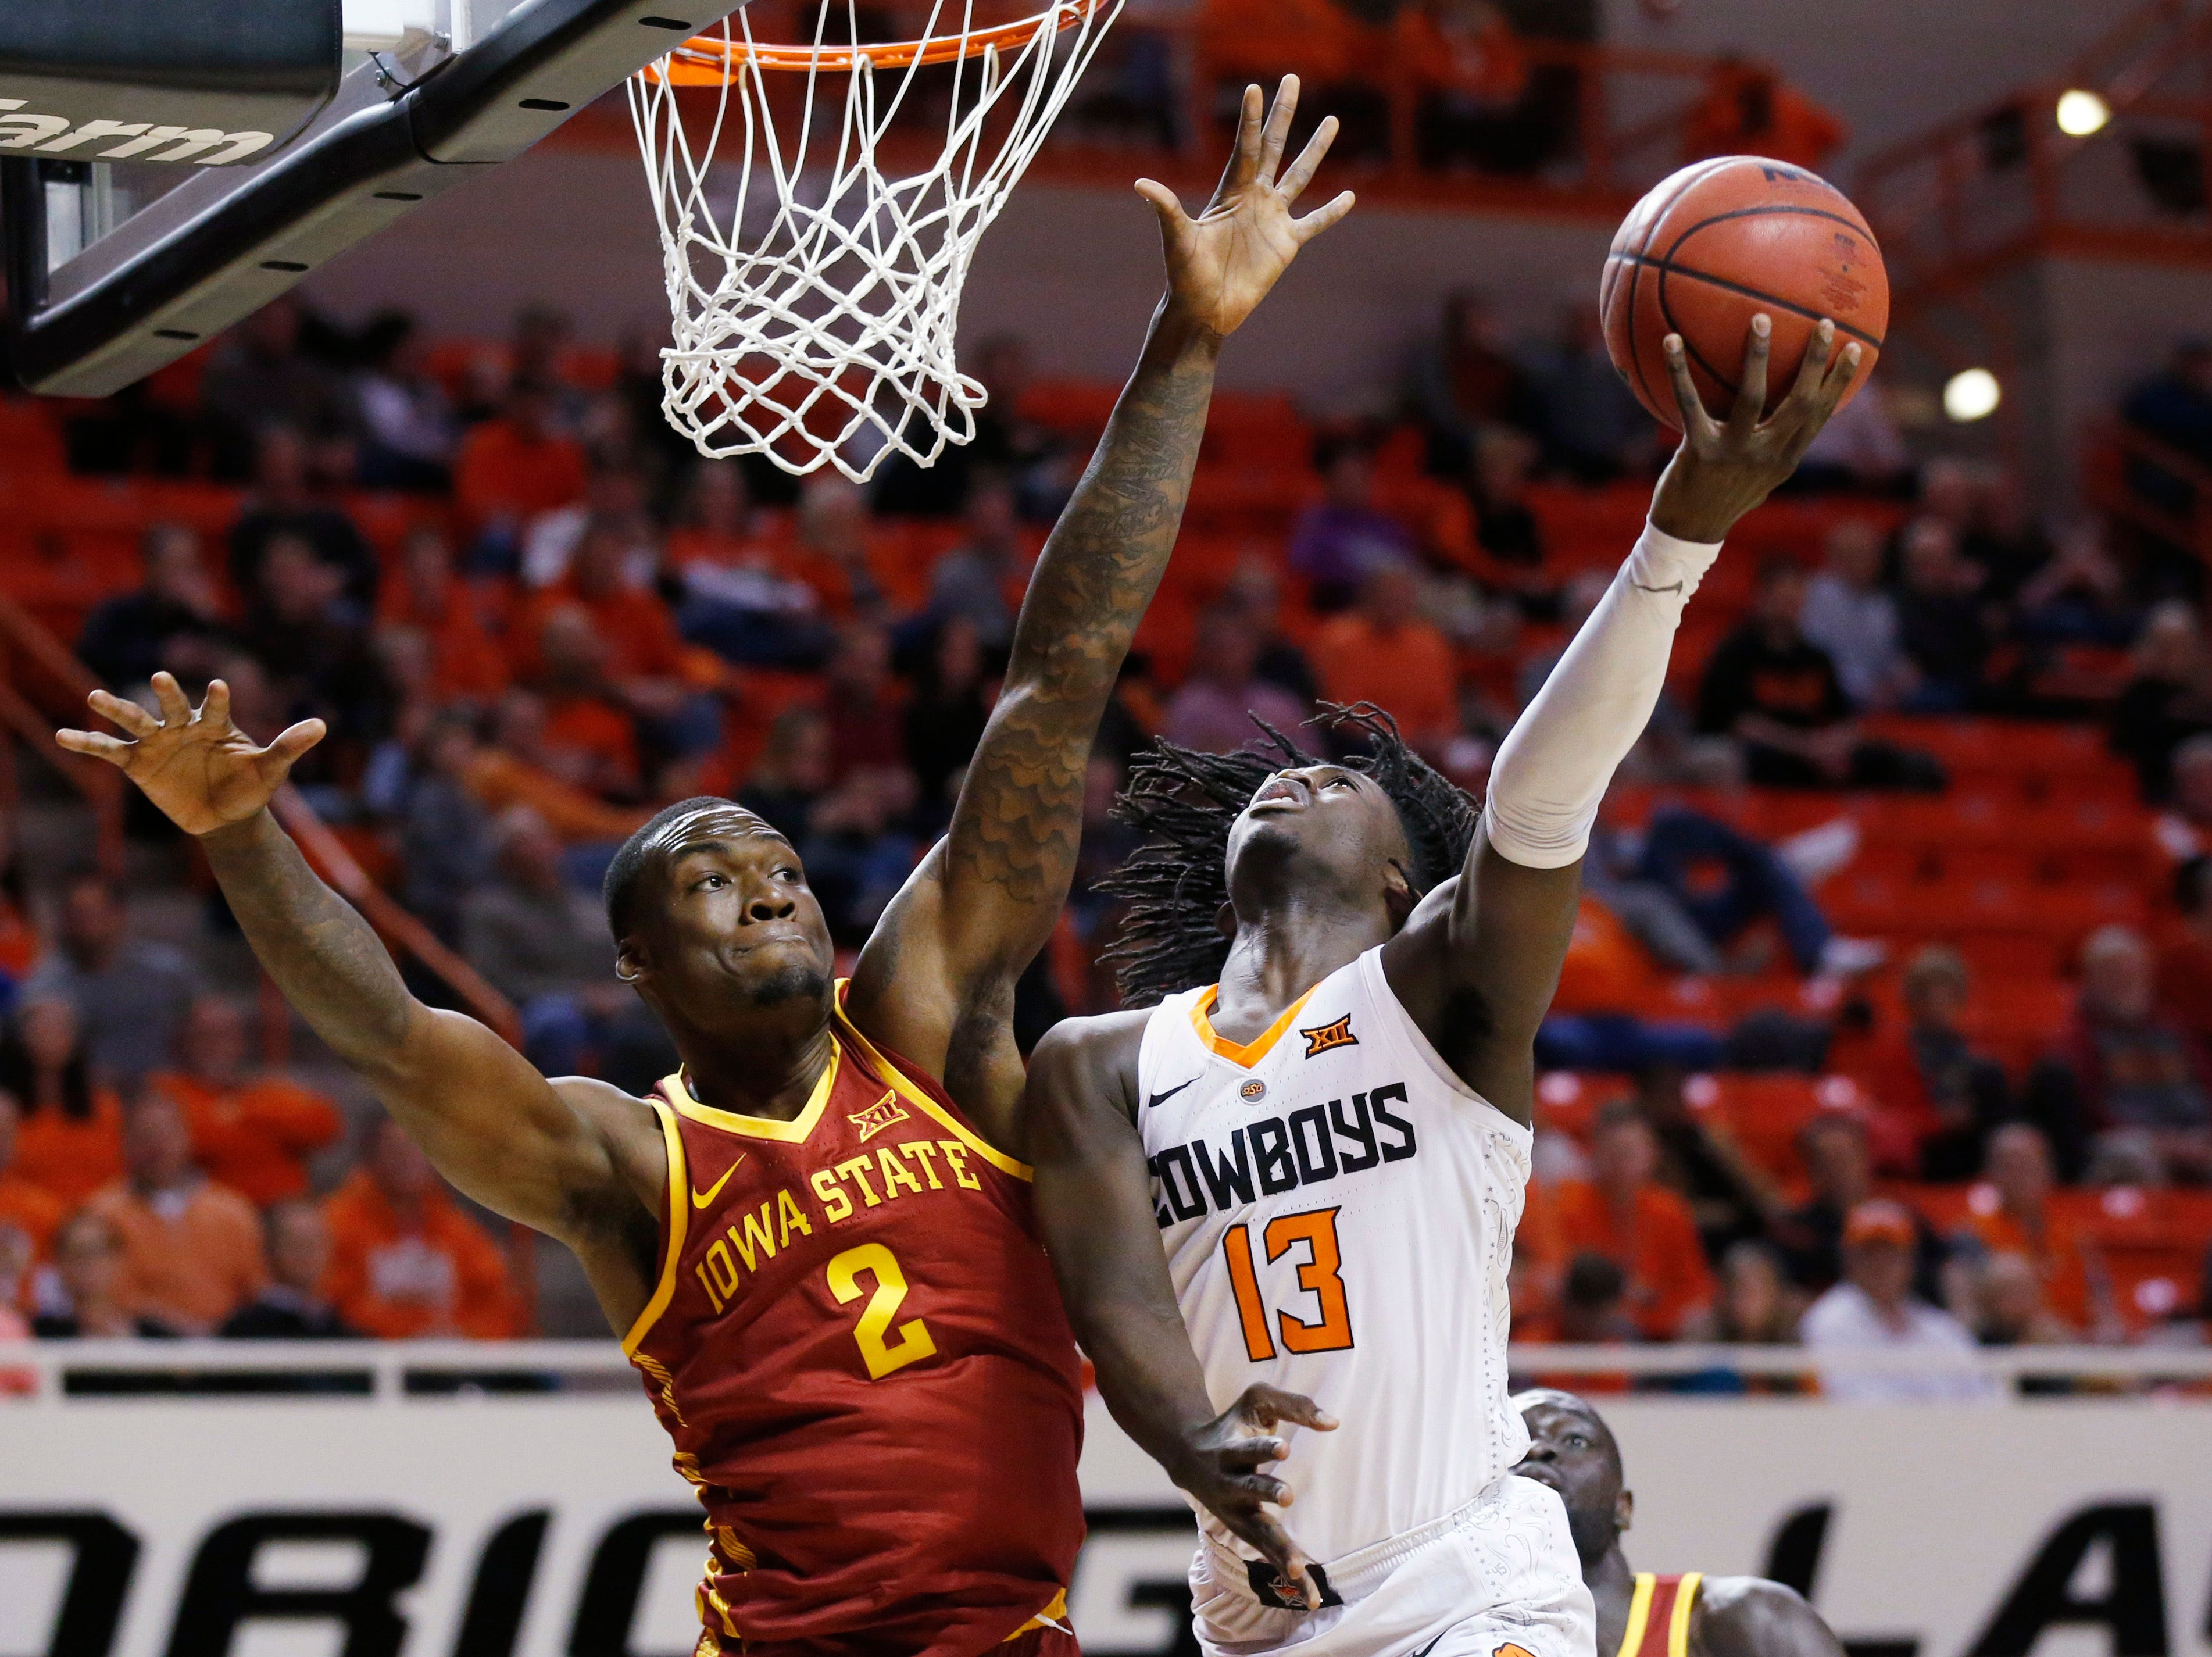 Oklahoma State guard Isaac Likekele (13) shoots as Iowa State forward Cameron Lard (2) defends during the first half of an NCAA college basketball game in Stillwater, Okla., Wednesday, Jan. 2, 2019. (AP Photo/Sue Ogrocki)